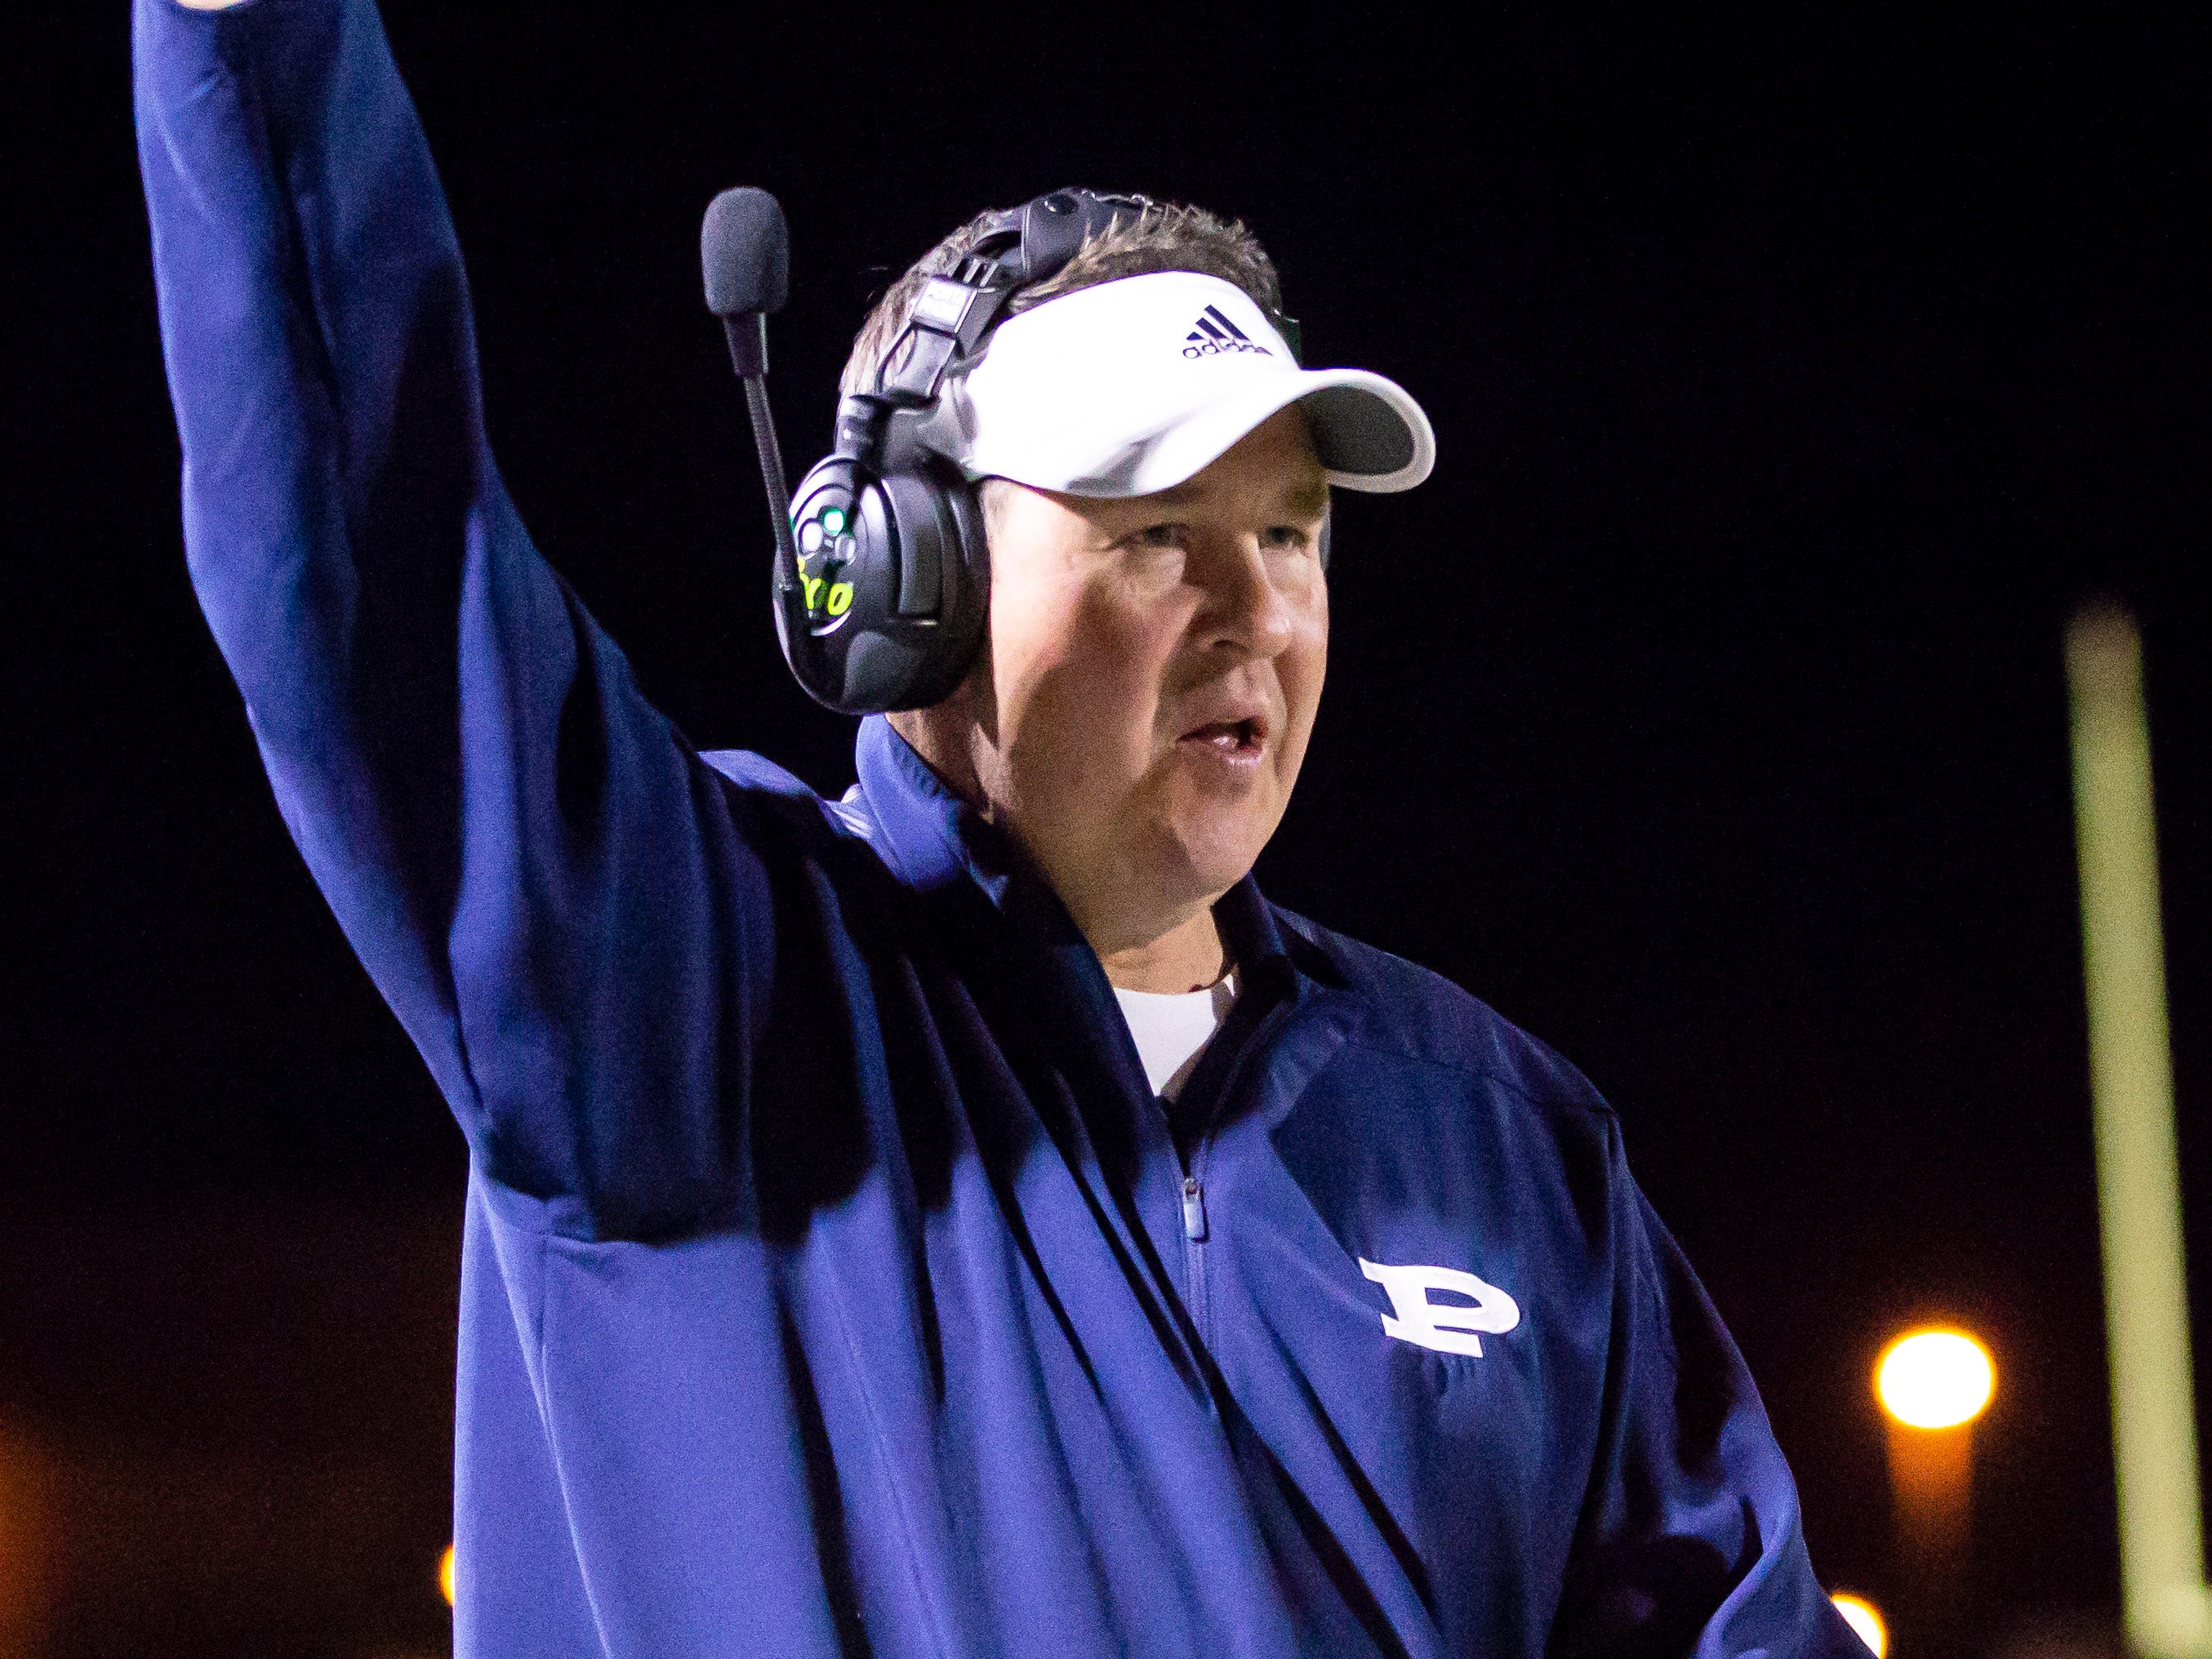 Kicking coach Eric Aardahl motions following a touchdown during the playoff game against the Red Mountain Mountain Lions at Pinnacle High School on Friday, November 9, 2018 in Phoenix, Arizona. #azhsfb